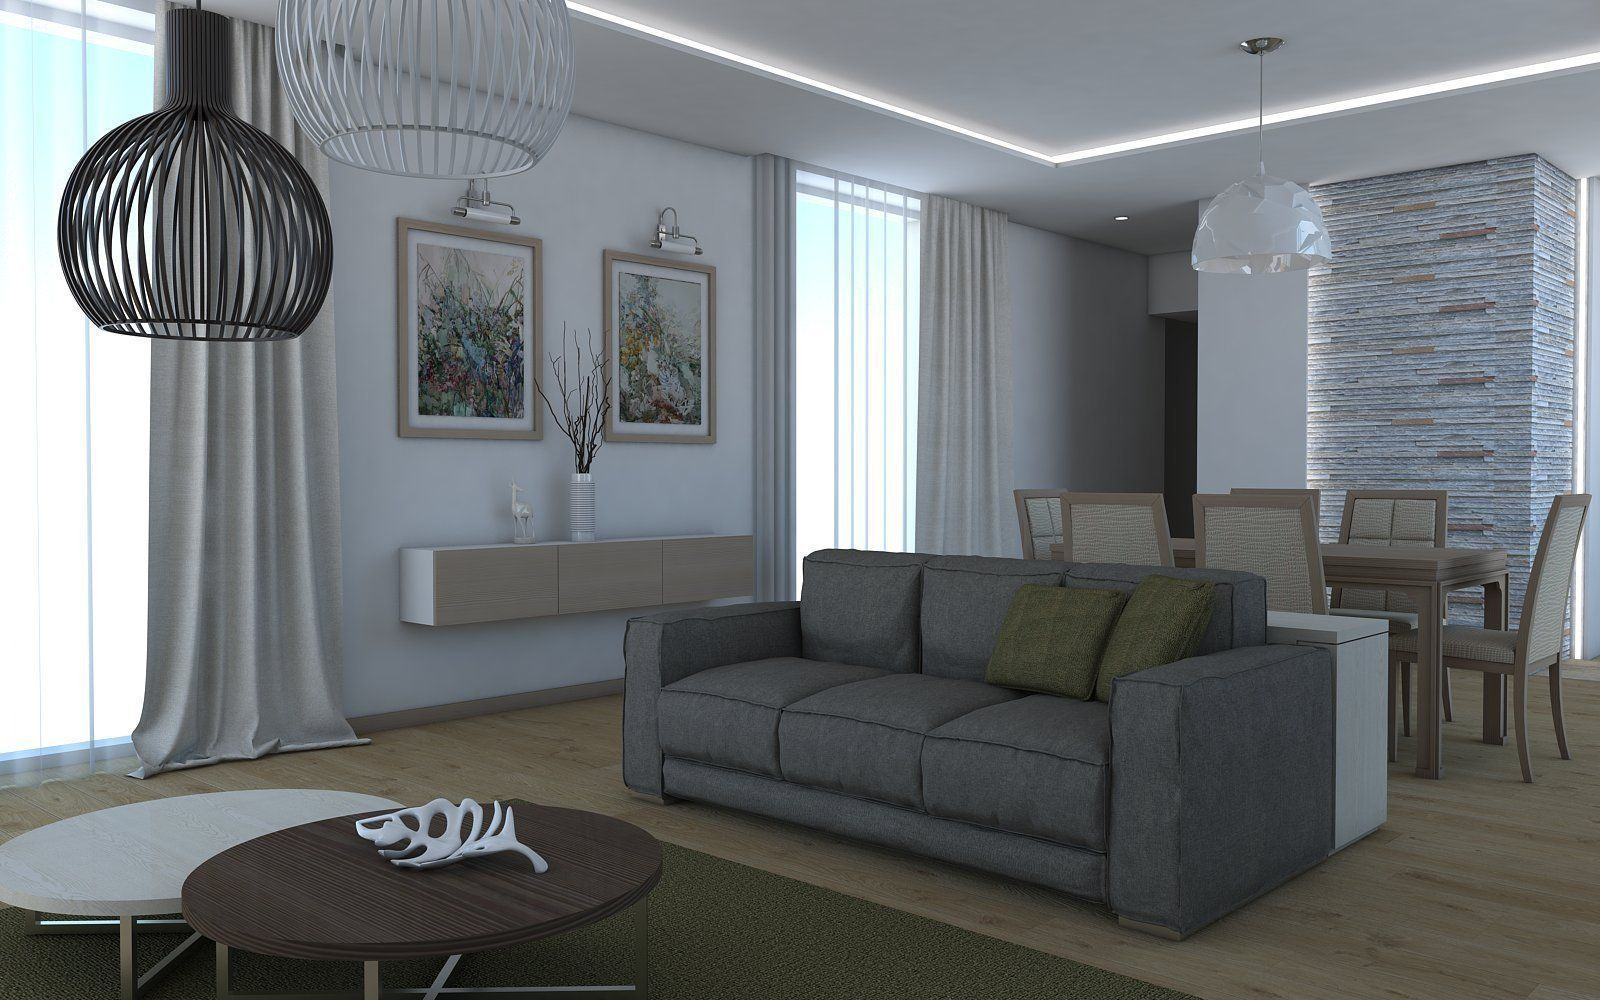 Living room 10 3d model skp for Living room 3d model